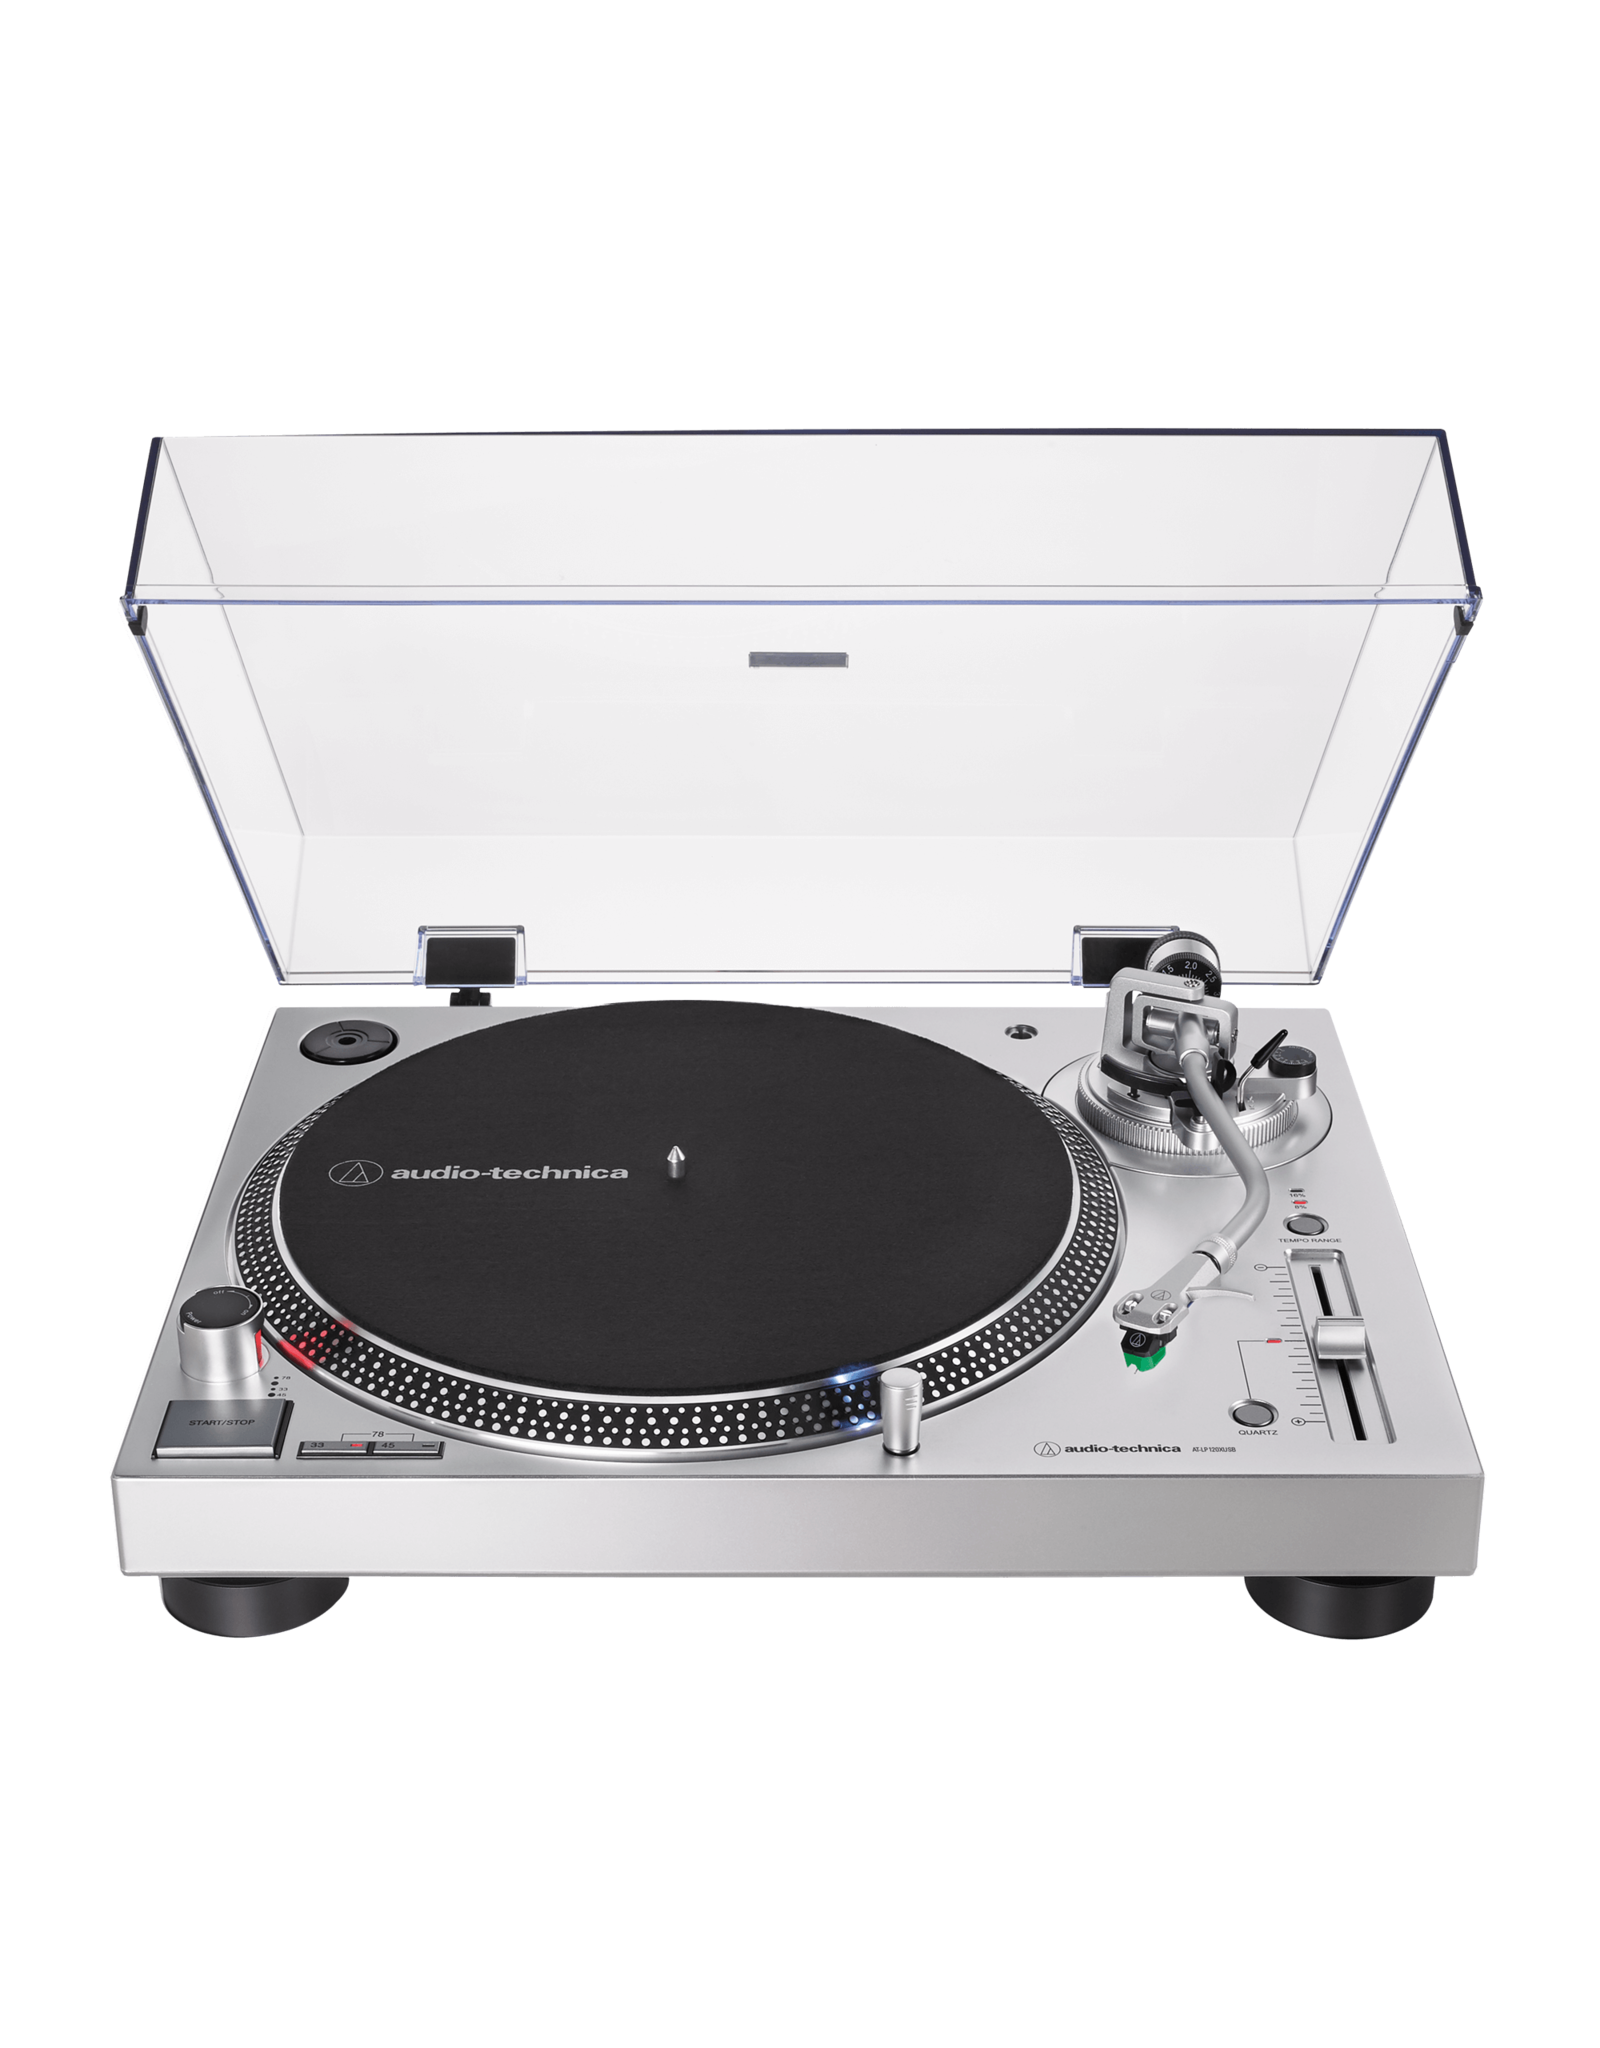 Audio-Technica AT-LP120X USB (Silver) Turntable